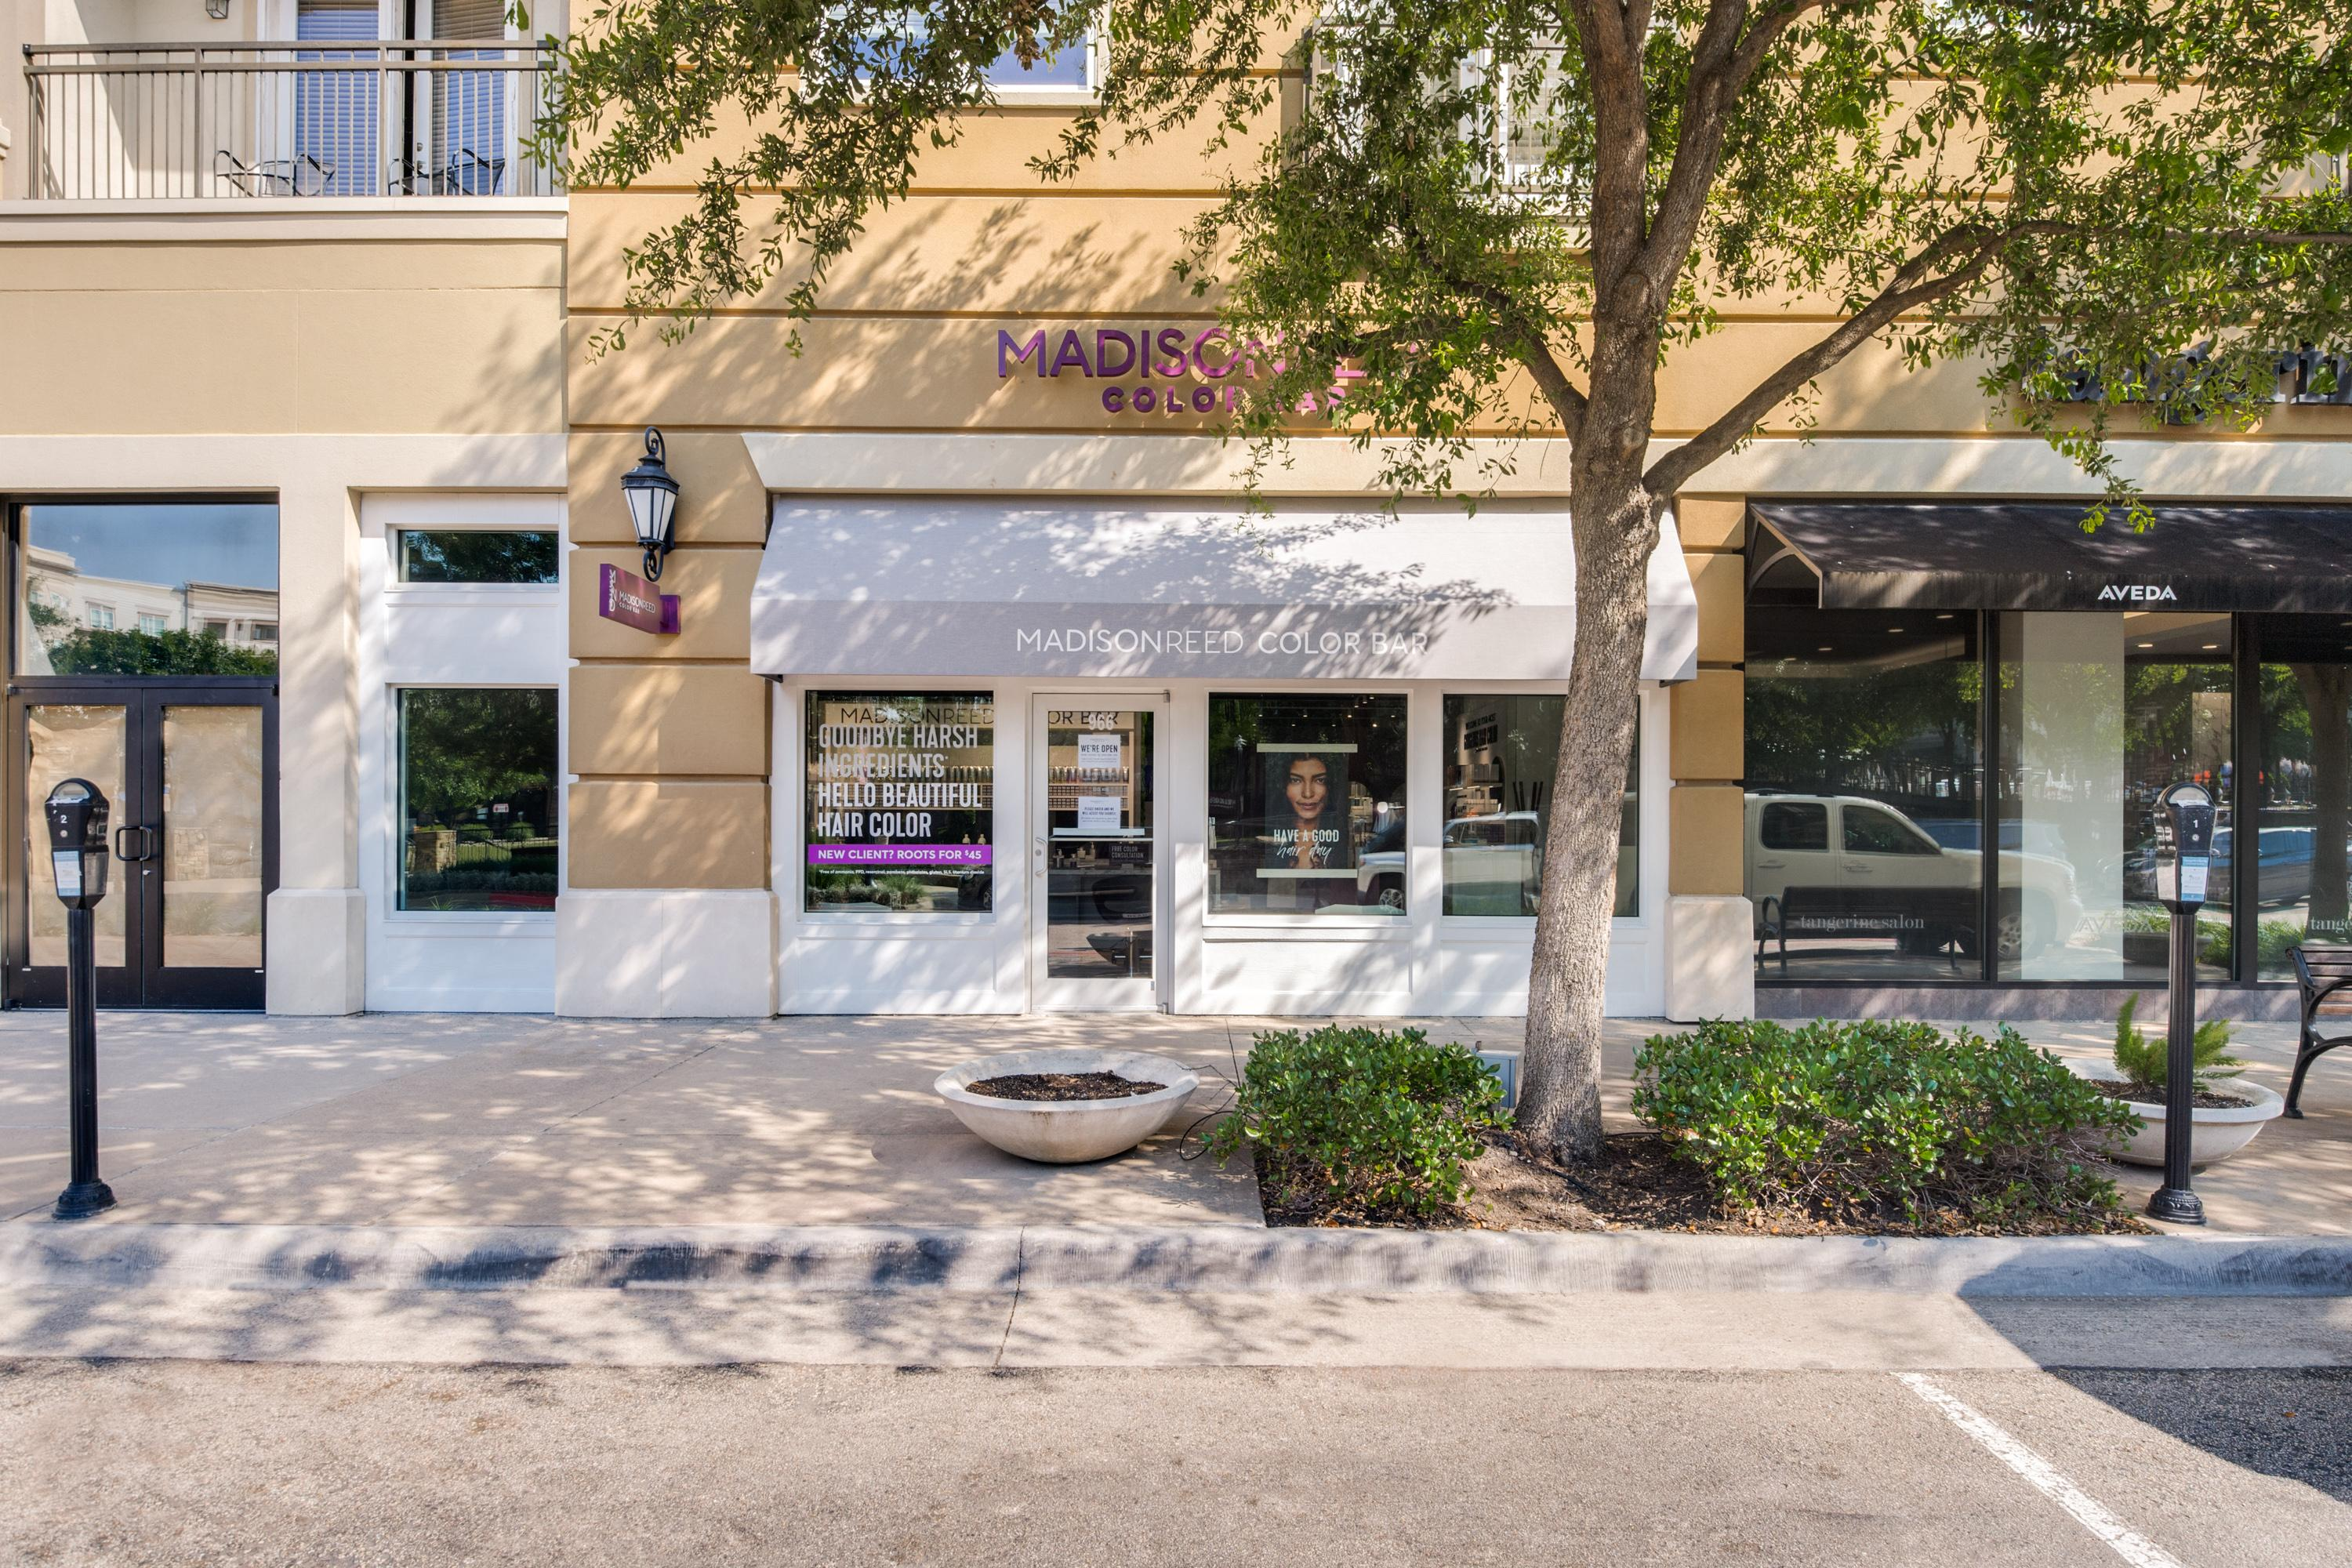 Exterior Photo of Madison Reed Color Bar Allen